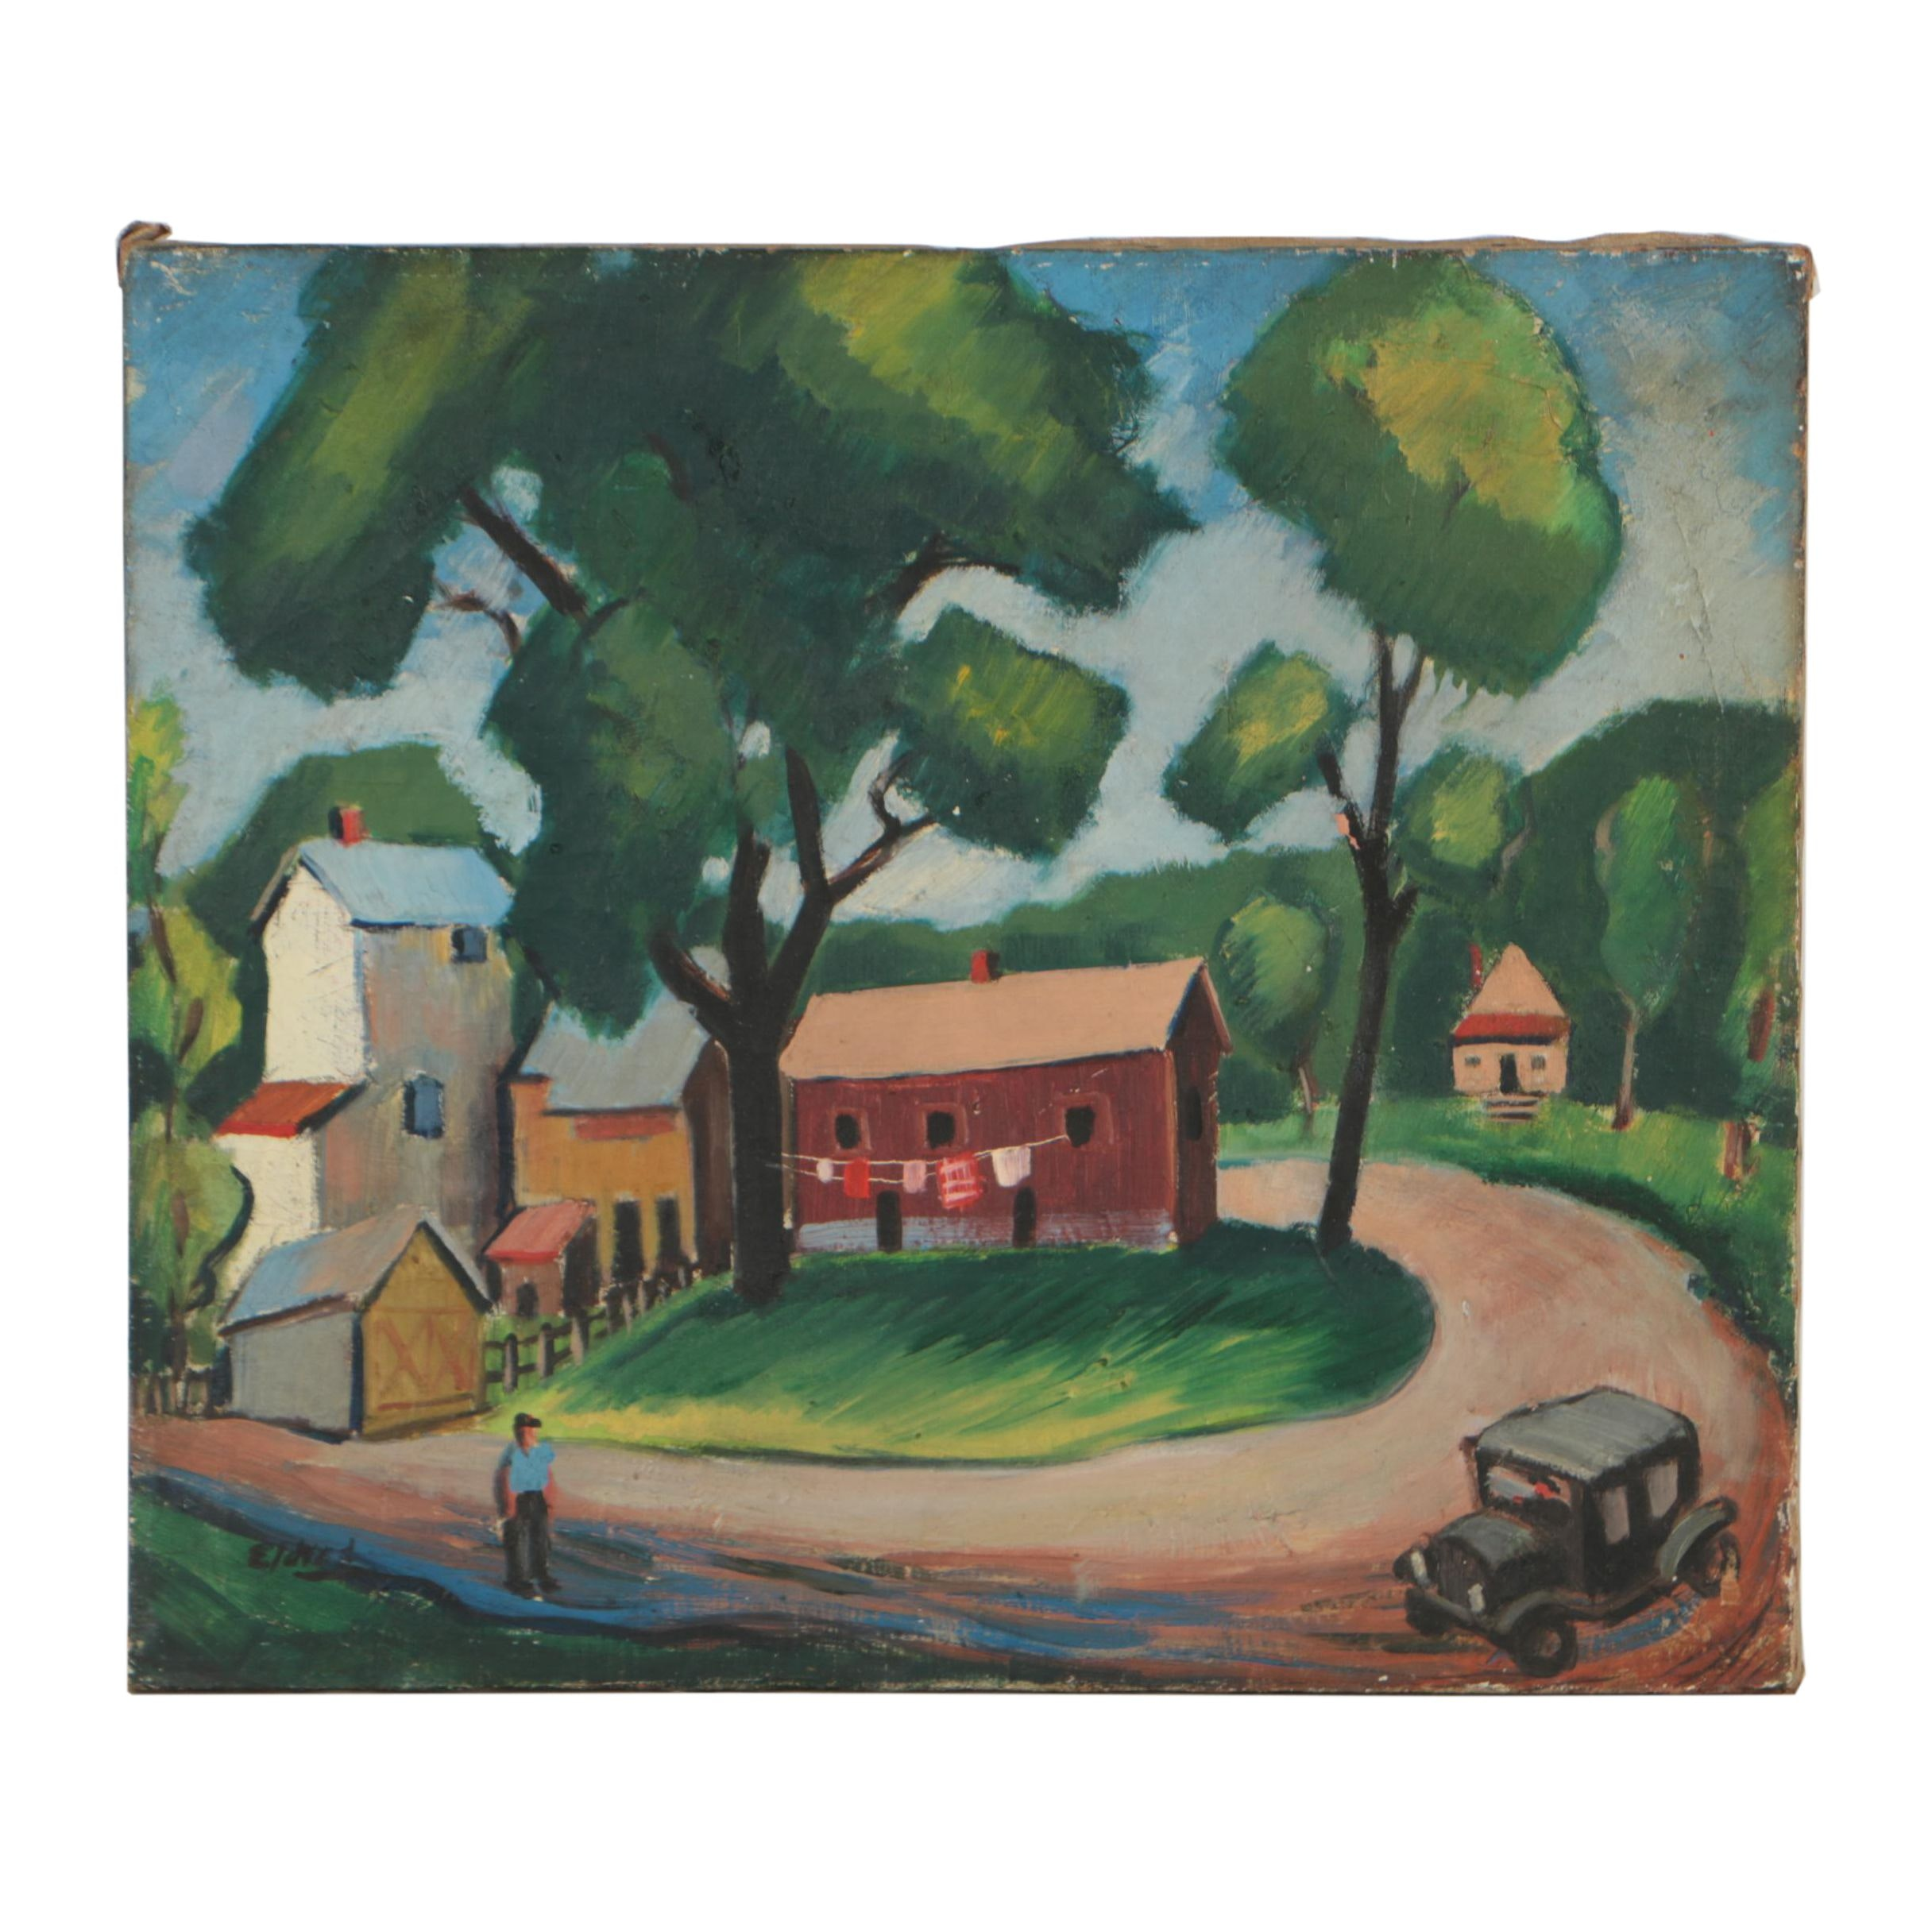 Thomas Brownell Eldred Oil Painting of a Town Scene